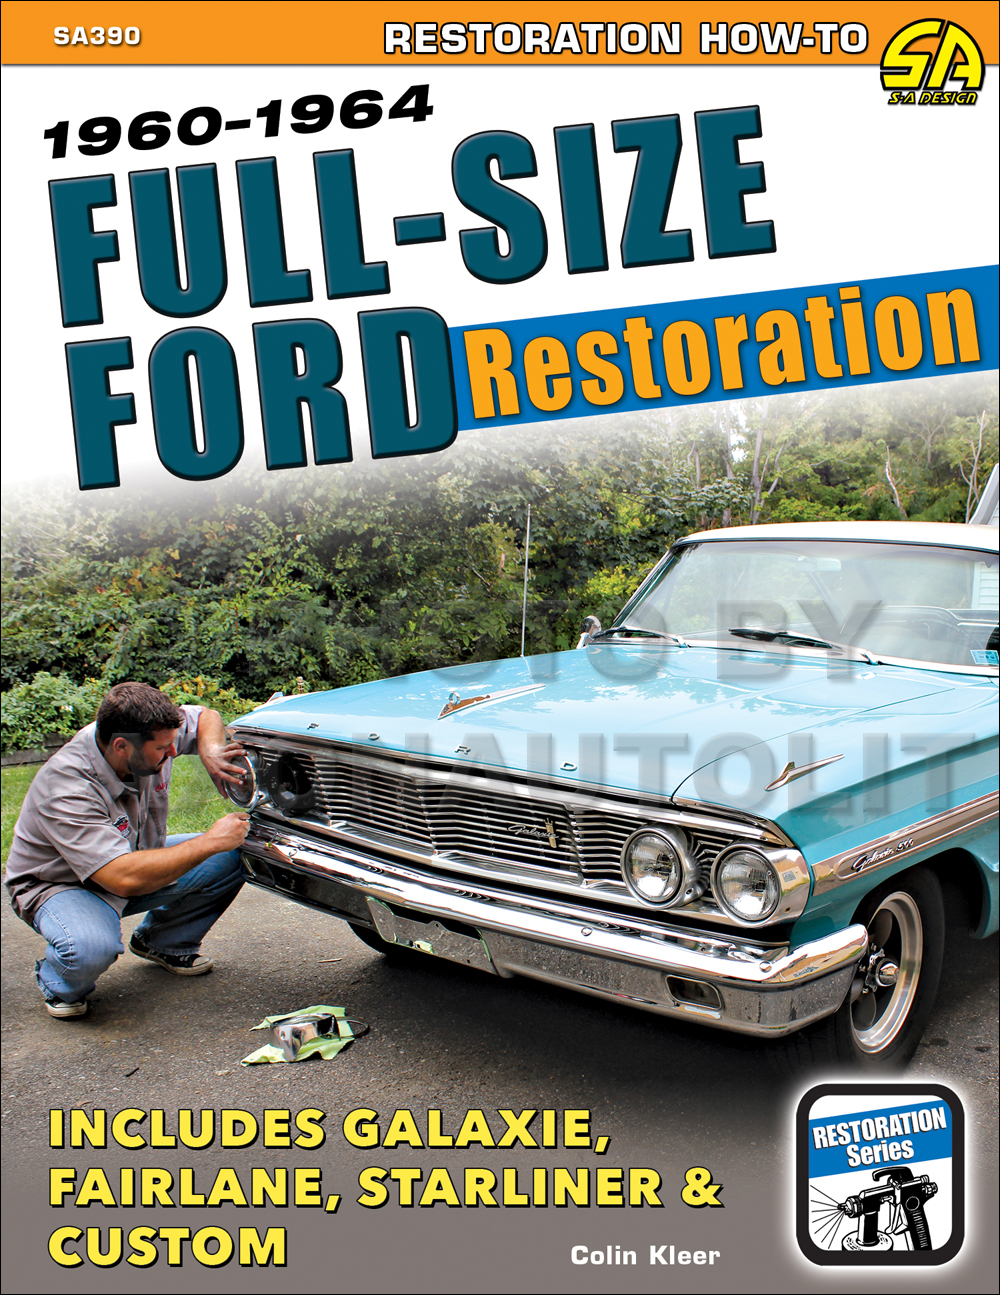 Full Size Ford Restoration Guide 1960-1964